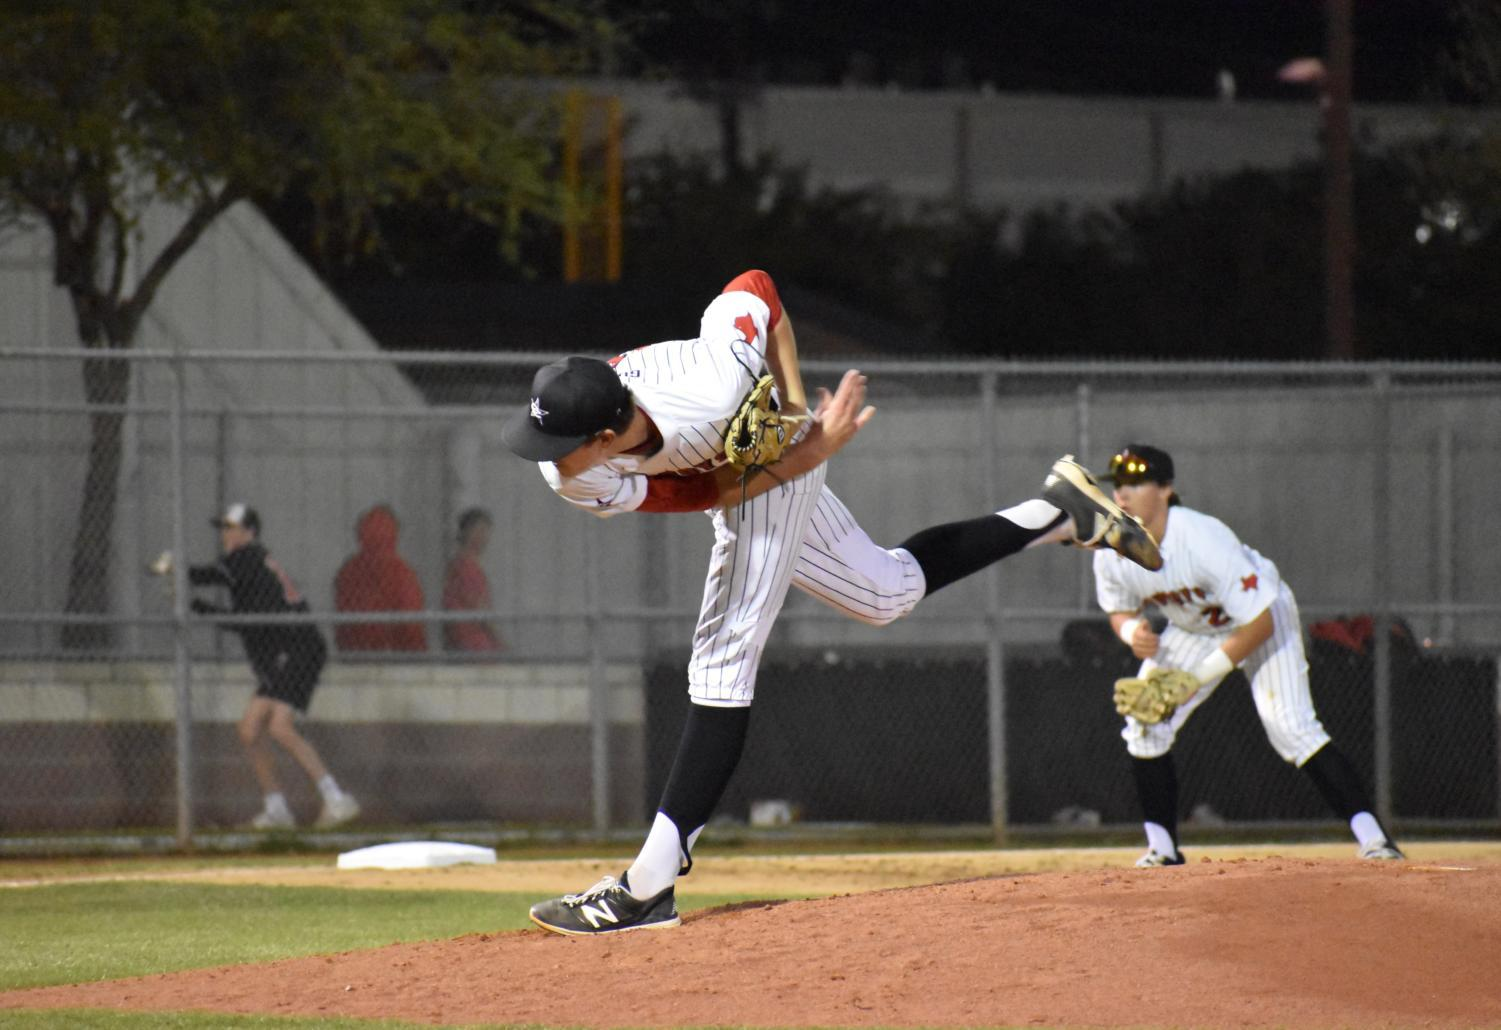 Coppell senior pitcher Rye Gunter delivers the next pitch to a Lake Highlands batter during Monday night's game at the Coppell Baseball/Softball Complex. The first game in the series against the Wildcats resulted in a 4-1 win for the Cowboys.